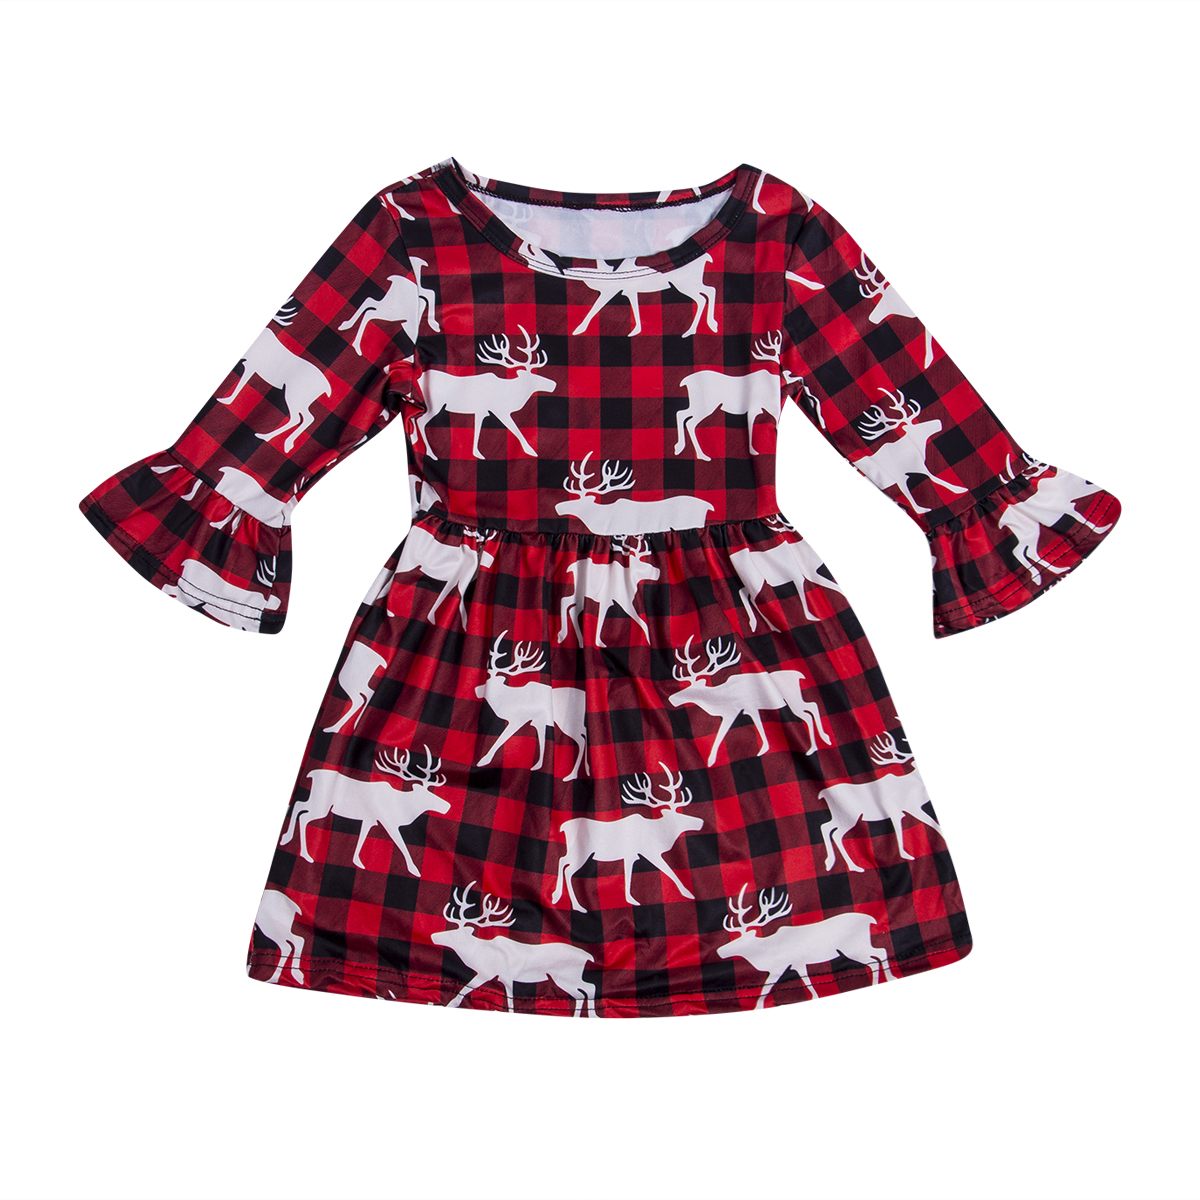 Xmas Toddler Baby Girls Dress Red Plaid Pattern Winter Checked Plaid Christmas Deer Long Sleeve Tutu Dresses Clothes